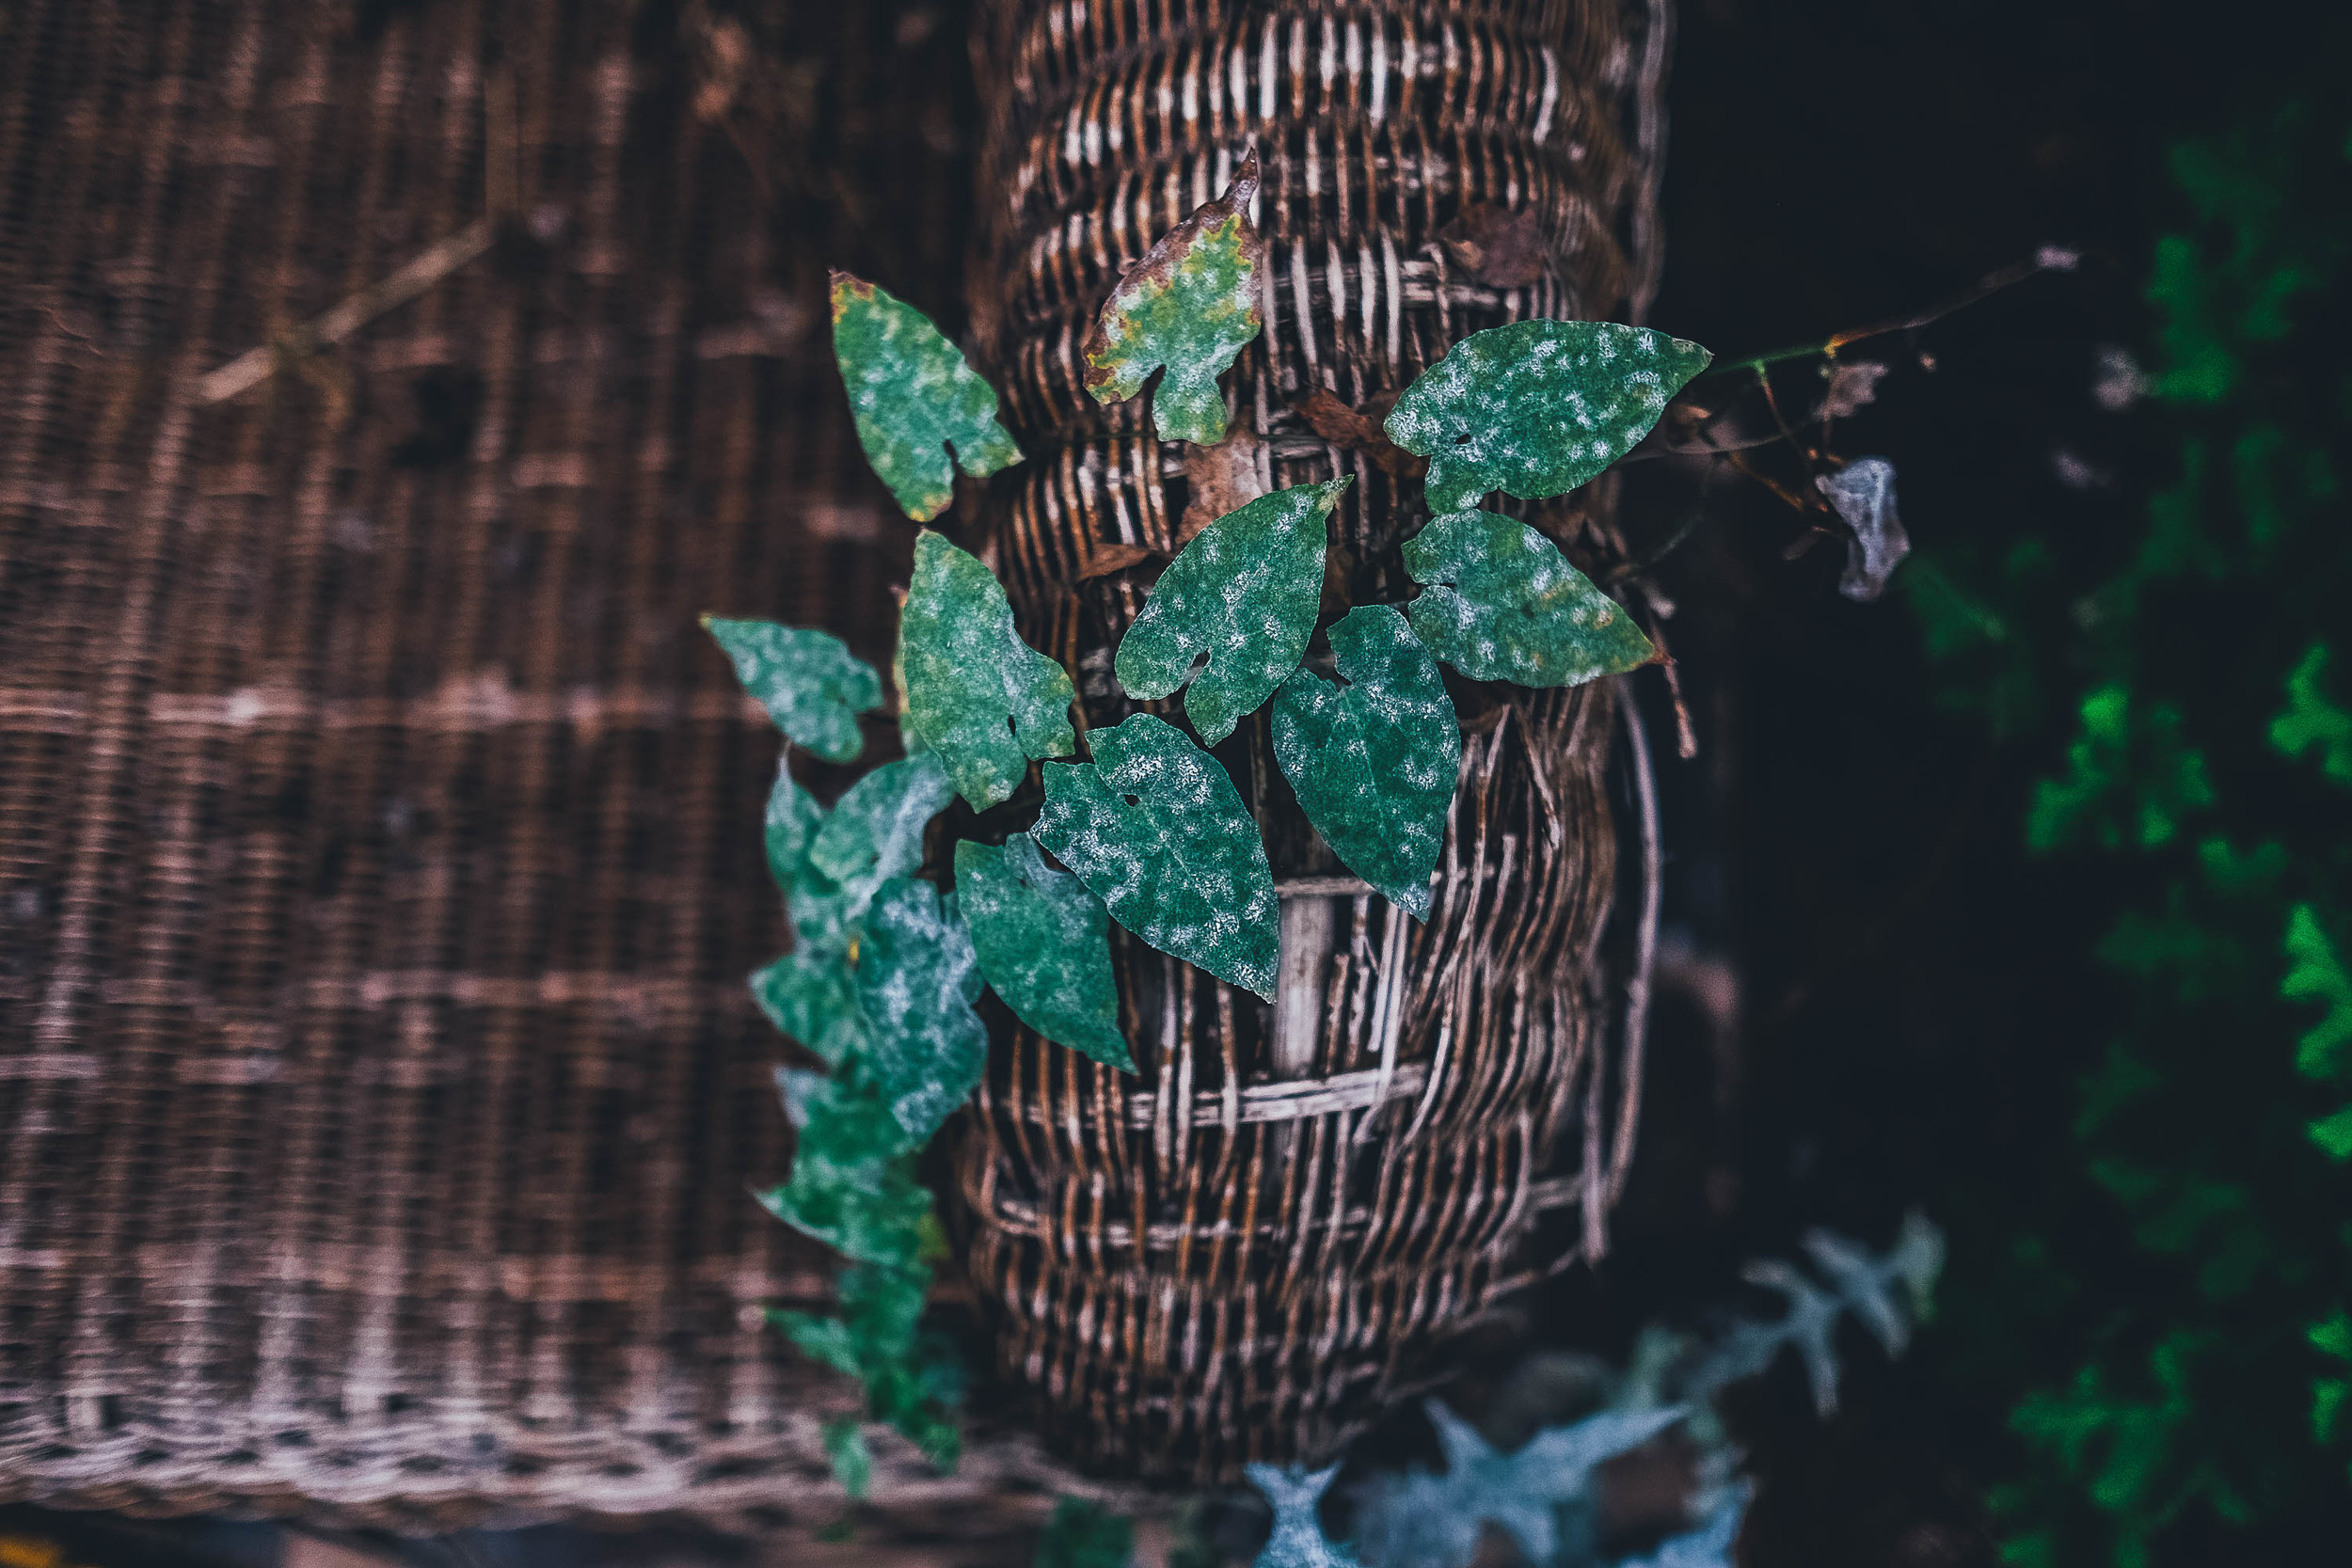 ivy trailing over chair